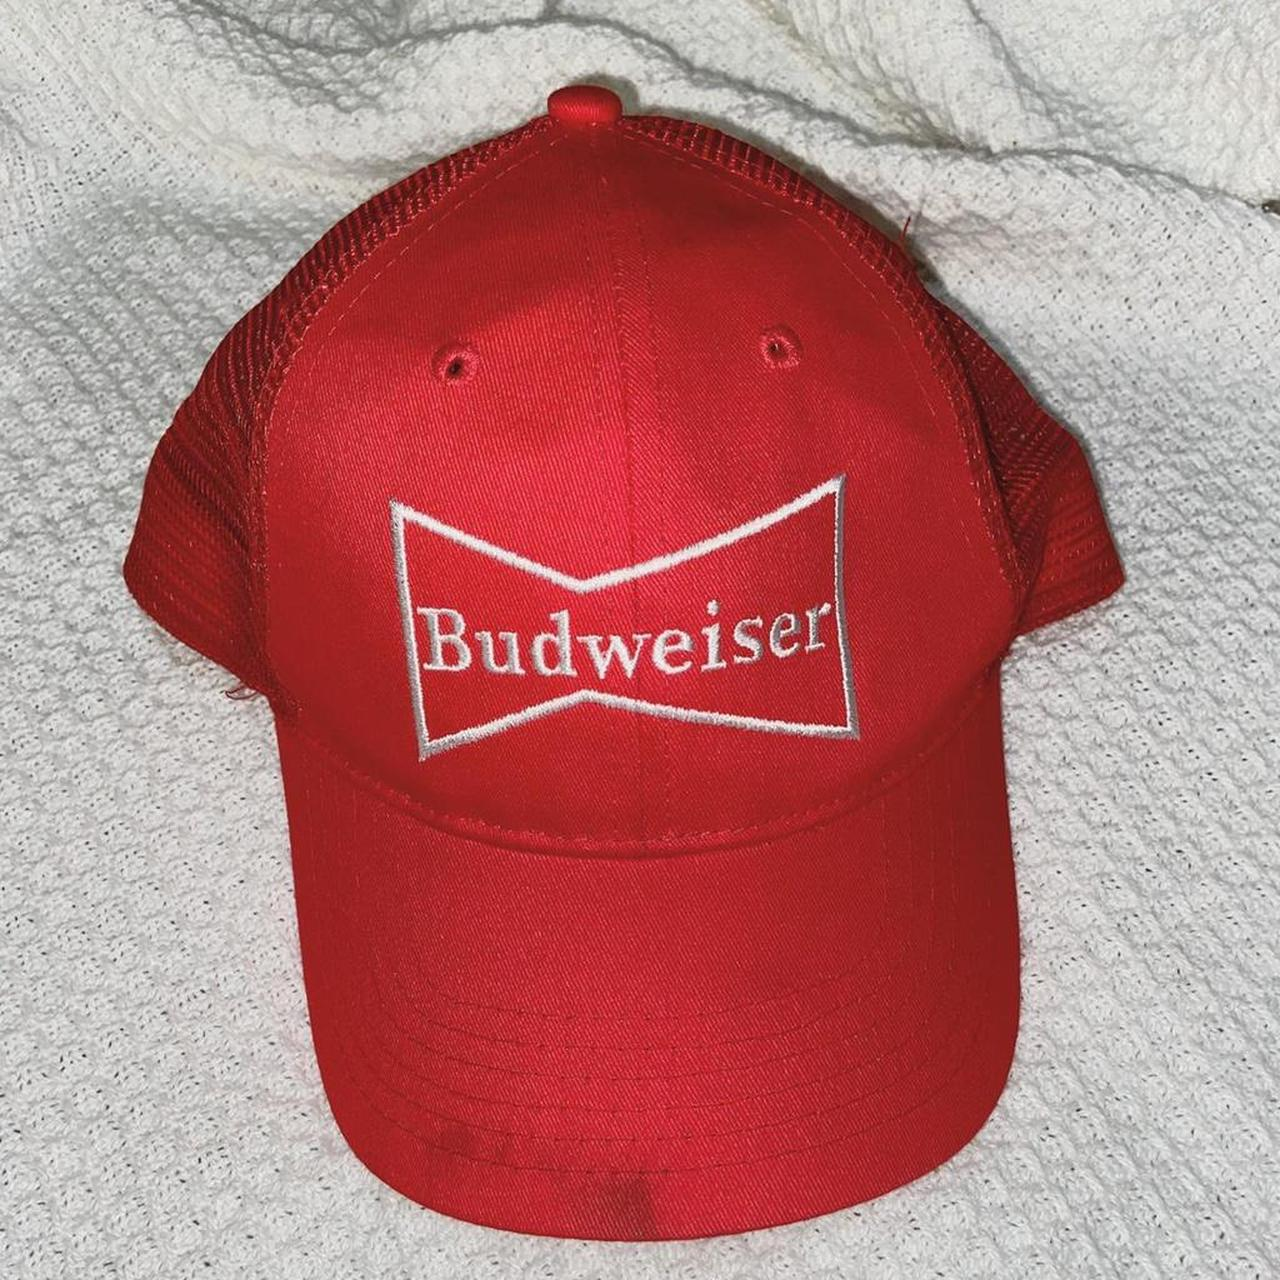 Product Image 1 - BUDWEISER HAT red small stain on